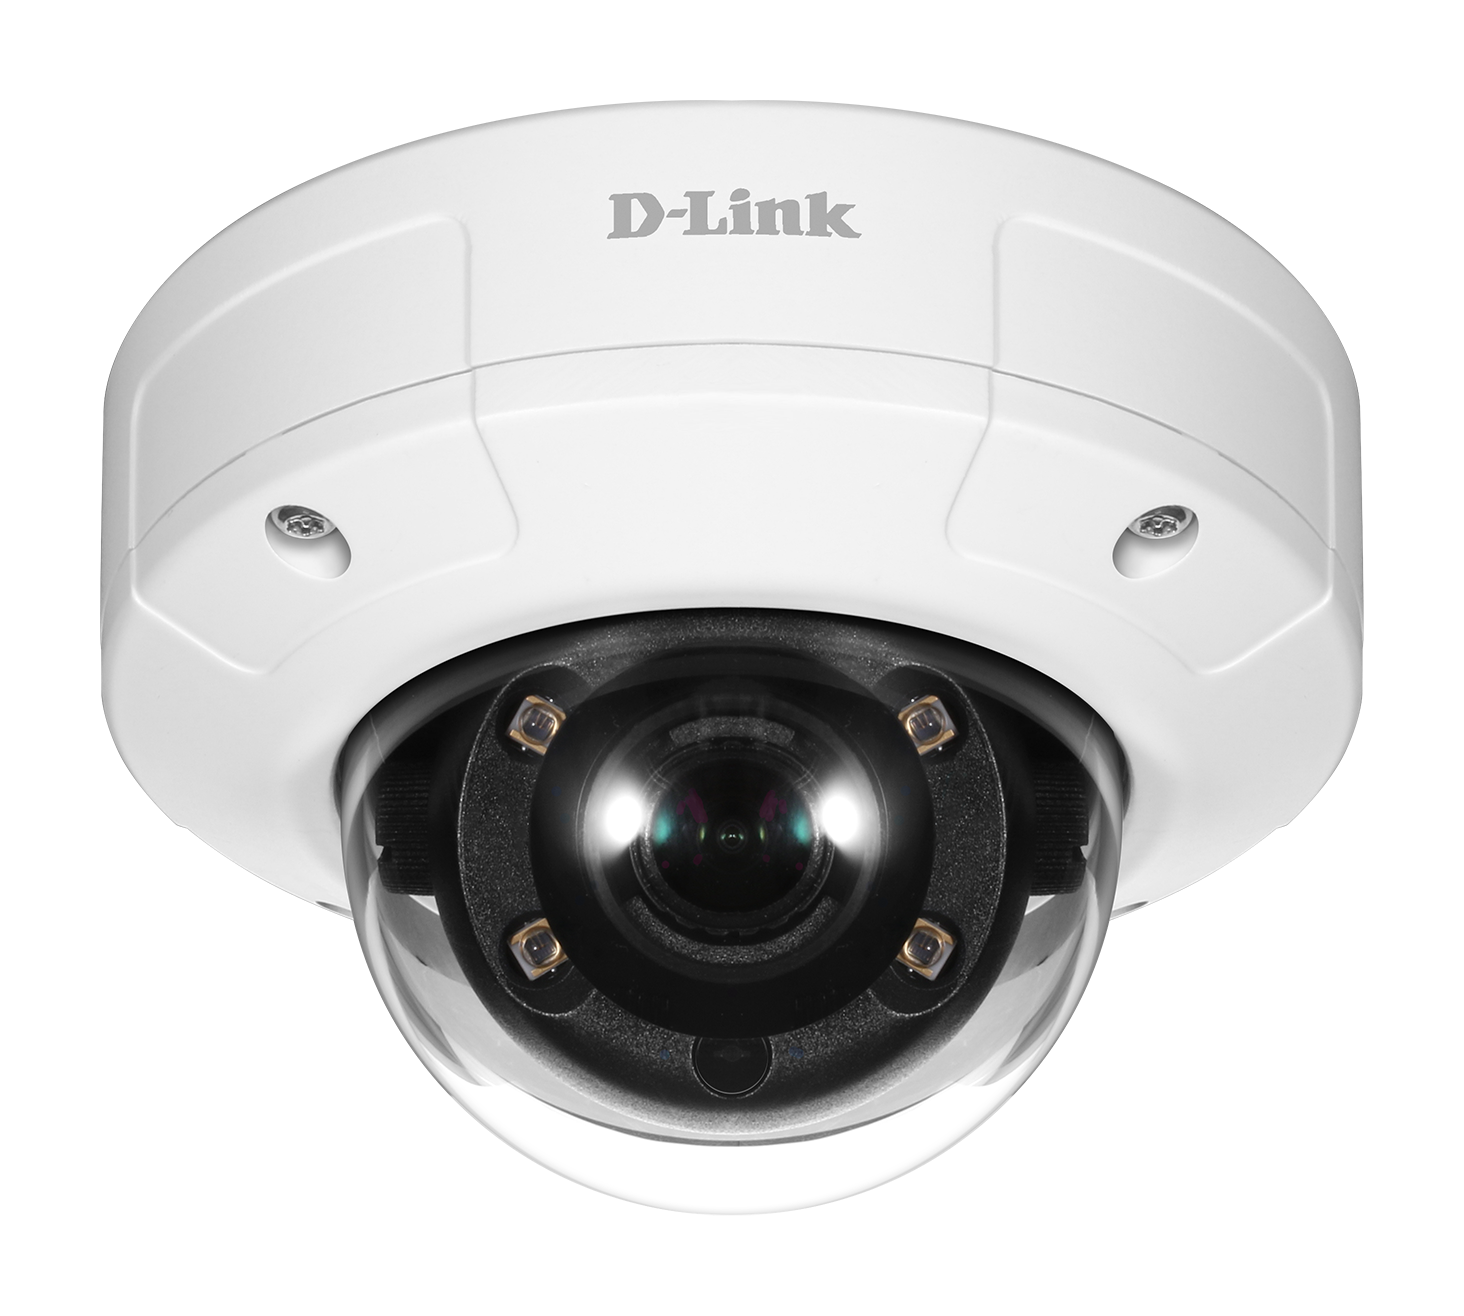 DCS-4633EV Vigilance 3-Megapixel Vandal-Proof Outdoor Dome Camera (front view)